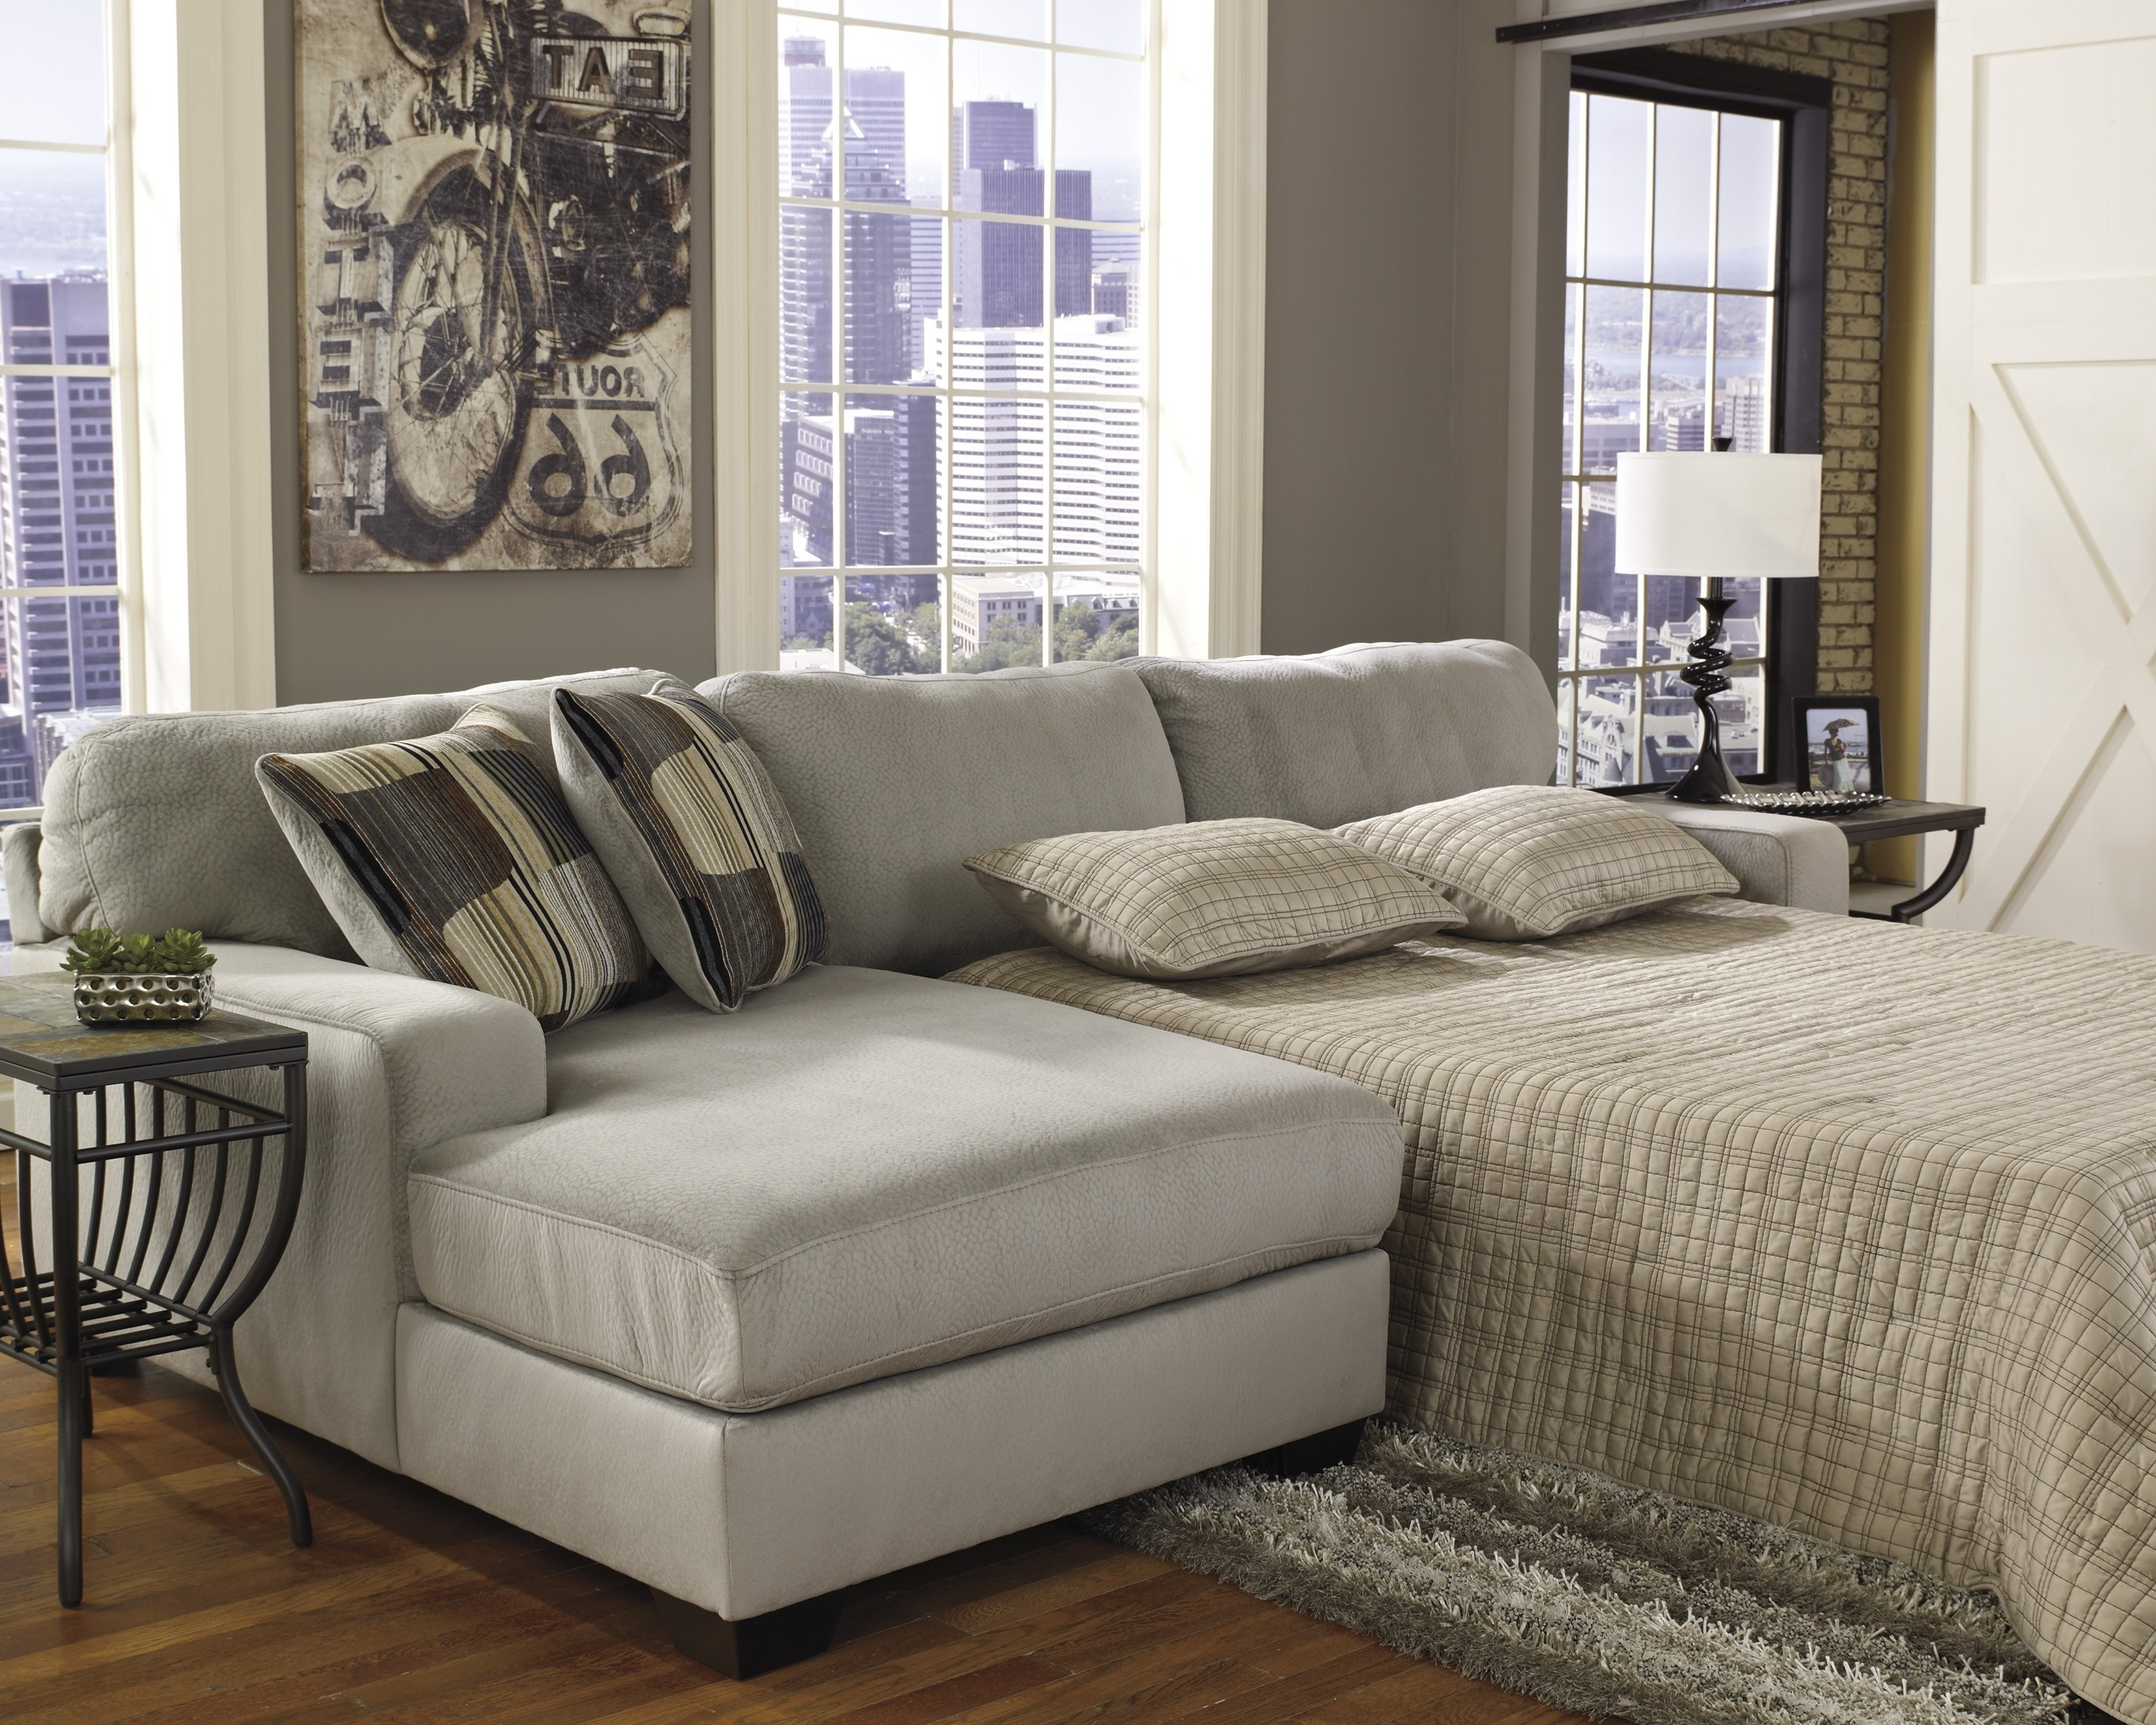 Living Room : Sectional Sofa Decorating Ideas Design Decoration Also Within Sectional Sofas Decorating (View 6 of 10)